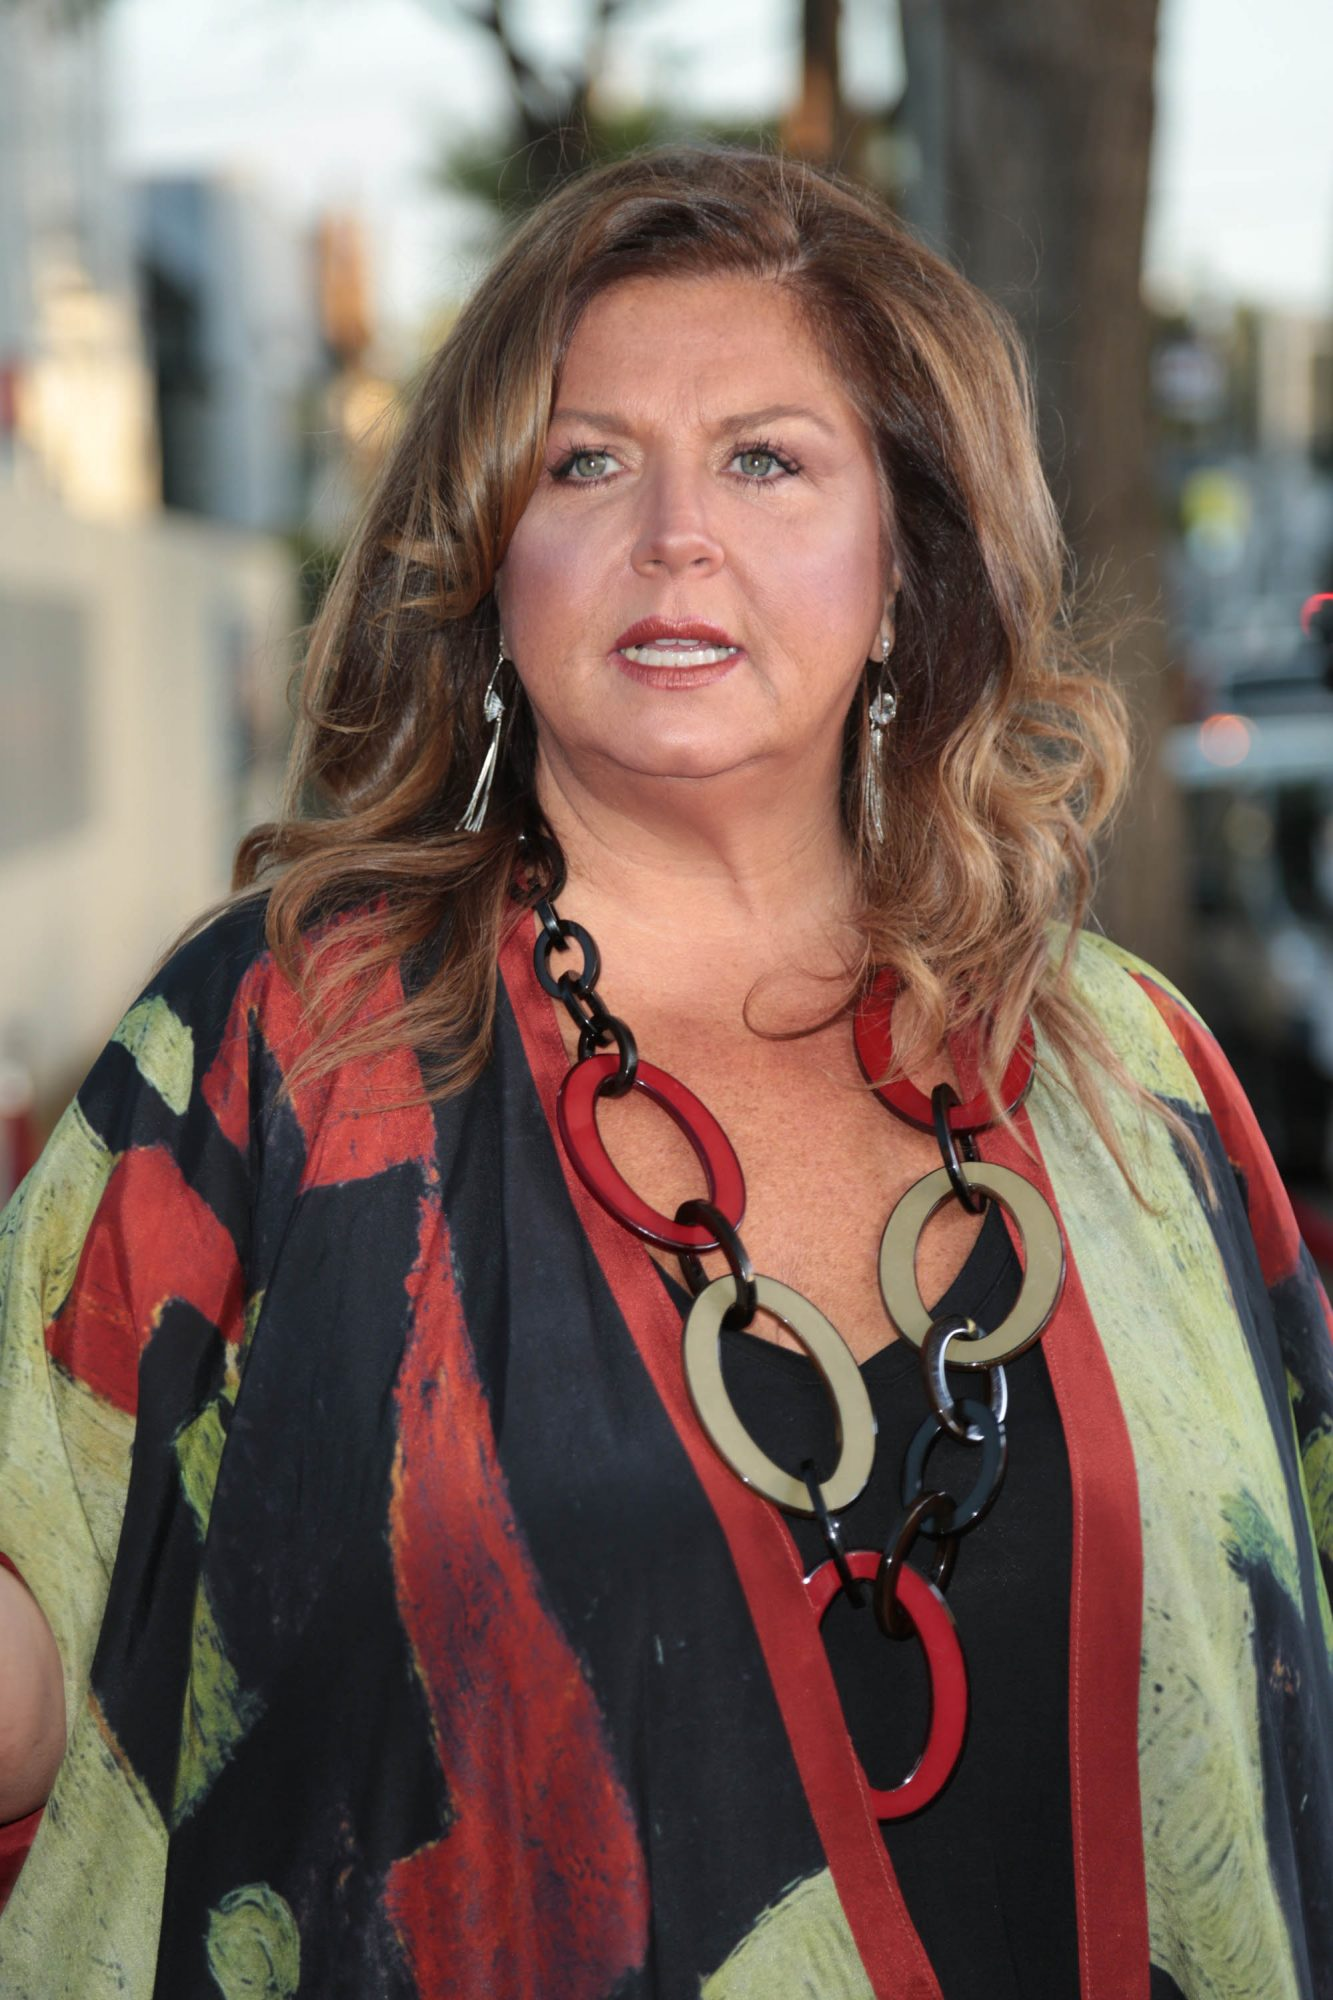 Abby Lee Miller Shares First Hospital Selfie as She Faces Preliminary Cancer Diagnosis